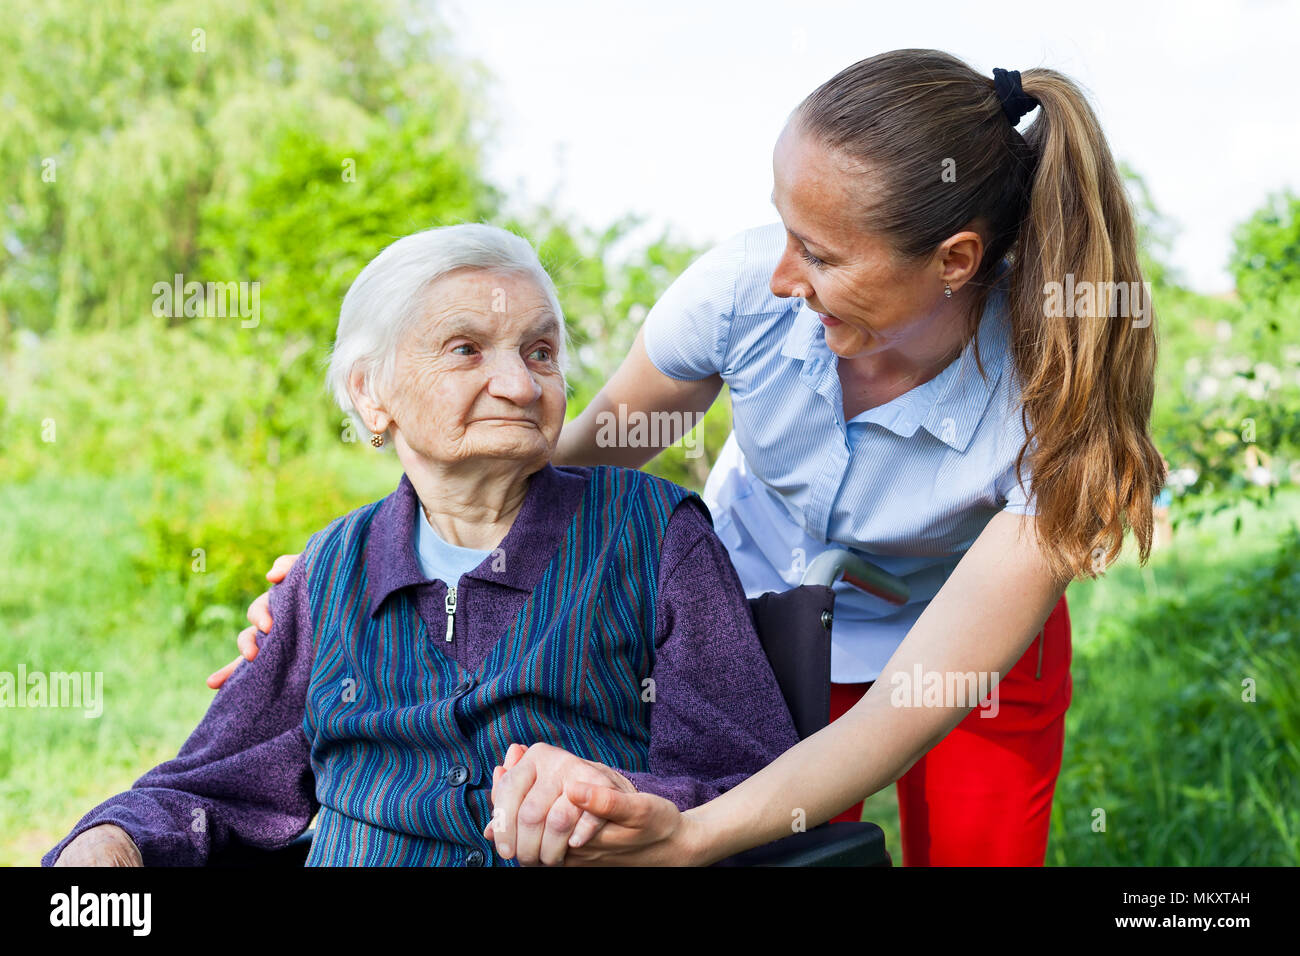 Senior invalid woman spending time outdoor with friendly young caregiver - Stock Image